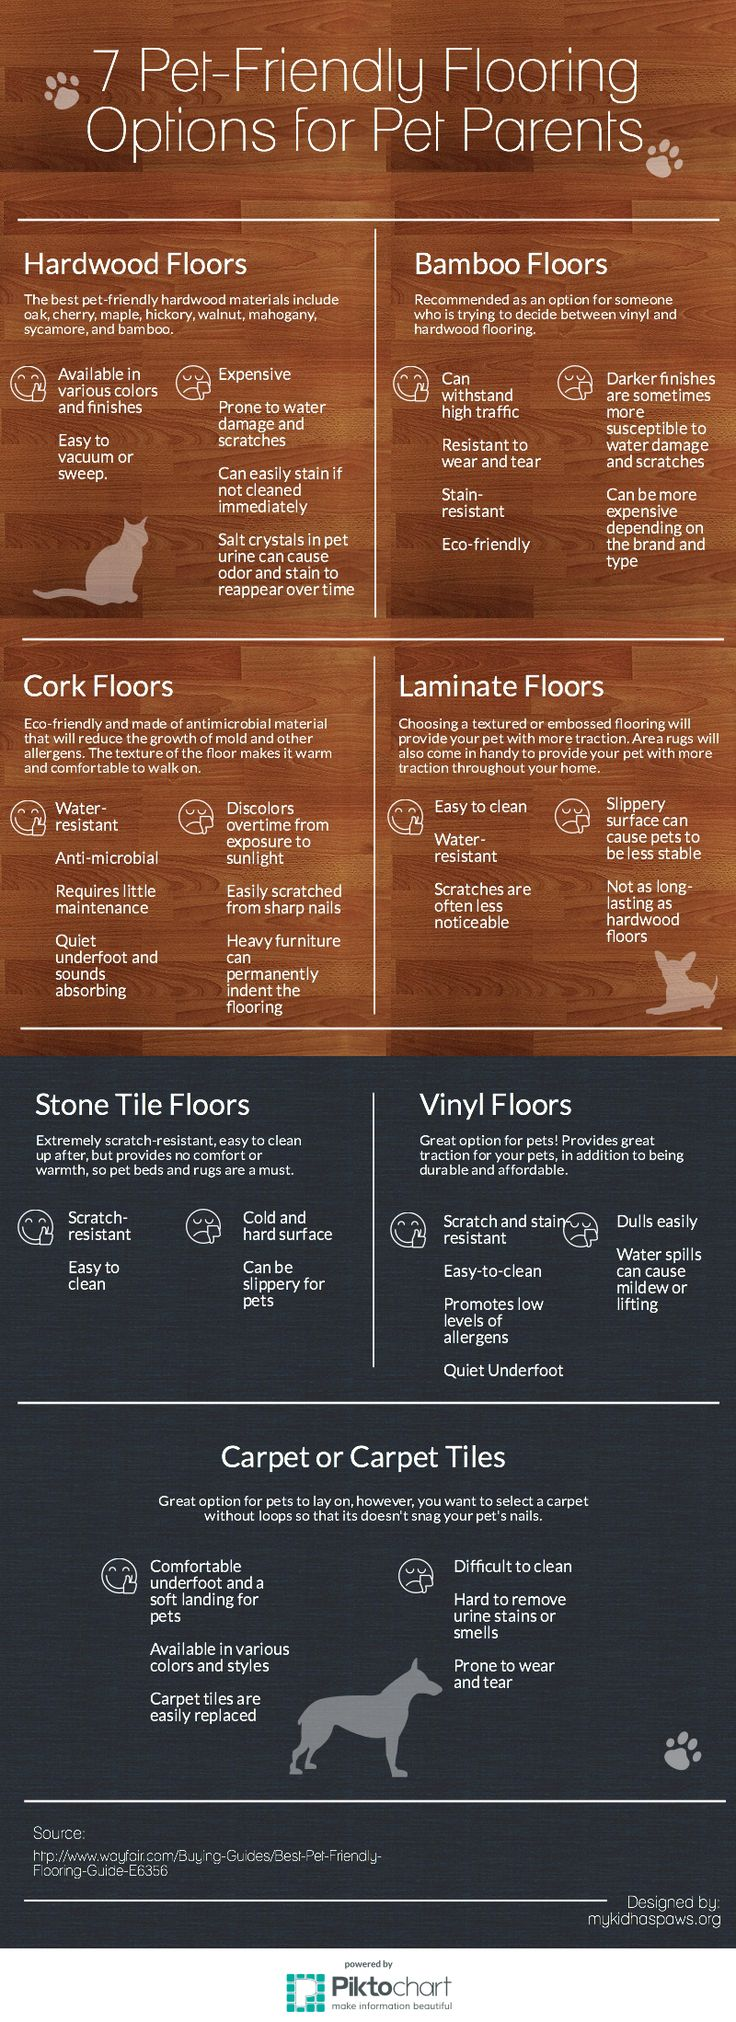 Wayfair: What to Consider When Selecting Pet-Friendly Flooring Options